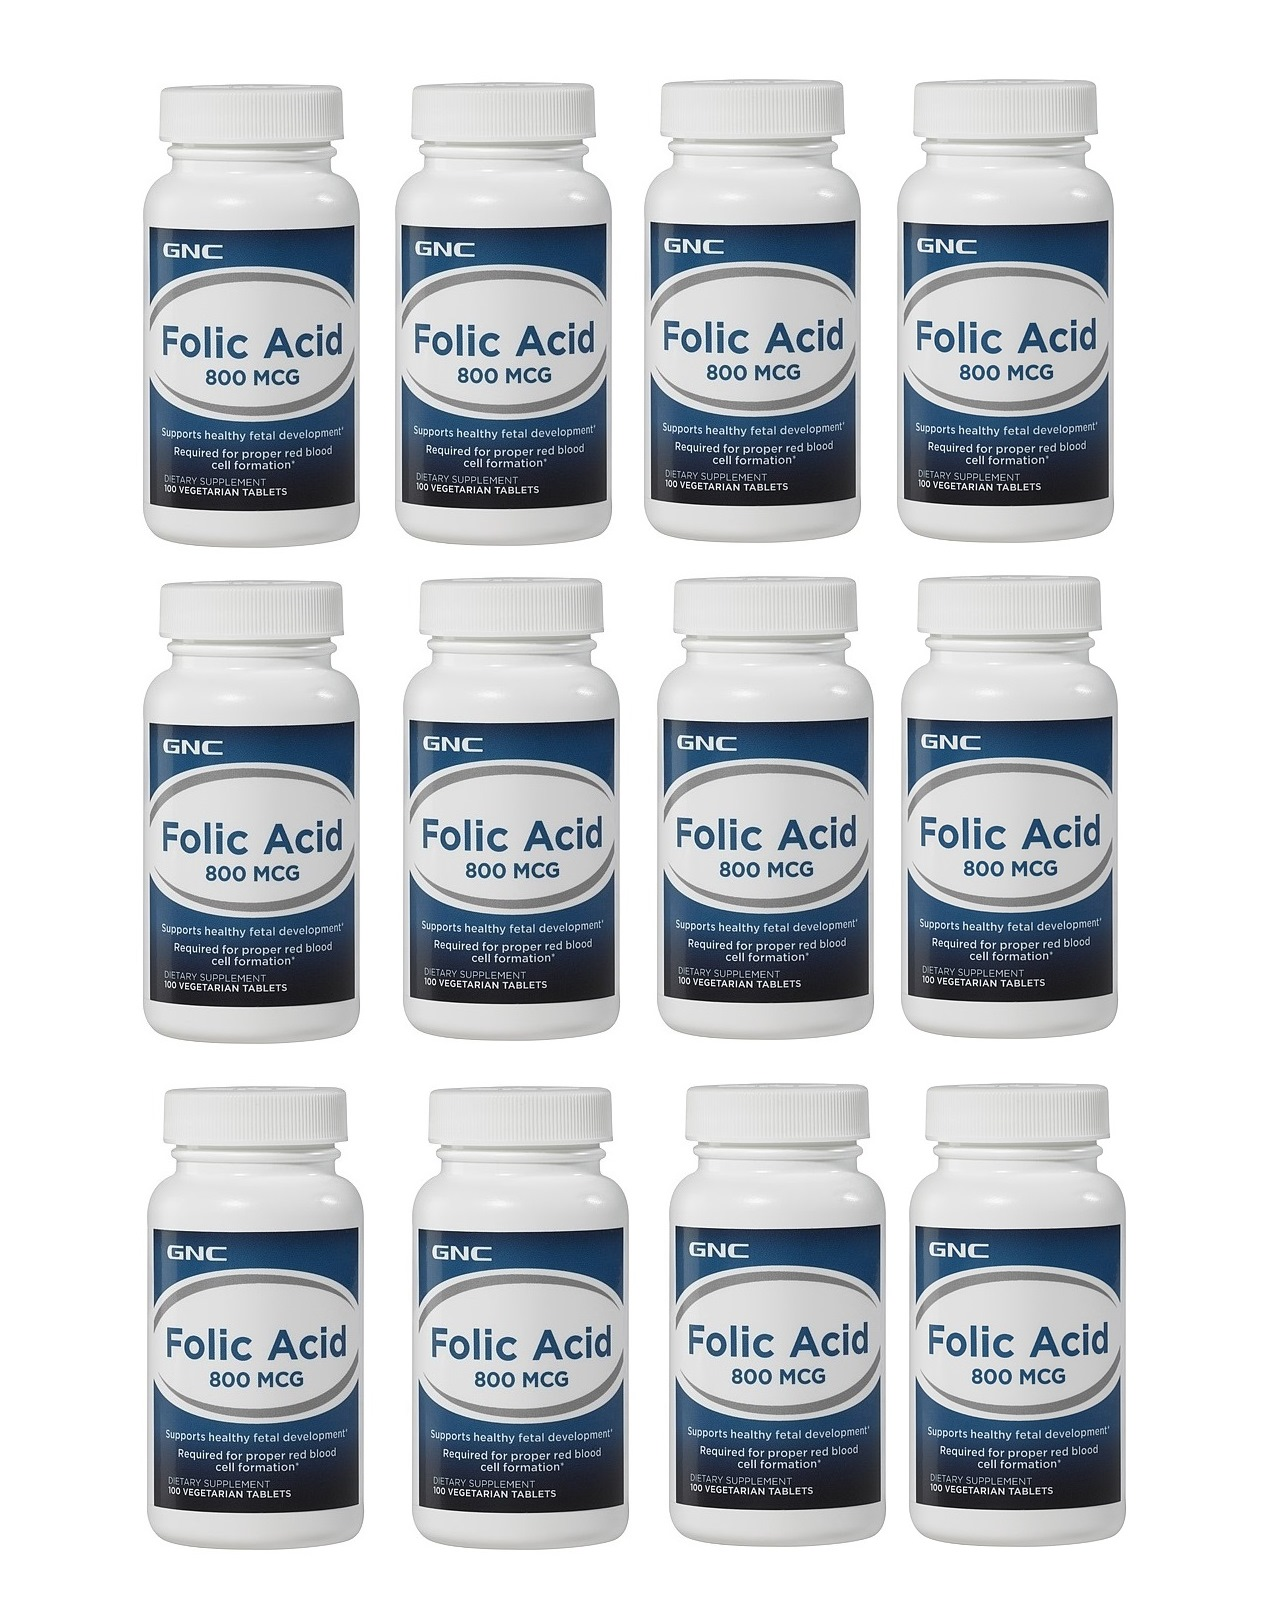 GNC 葉酸 Folic Acid 800 mcg, 100顆(一組12瓶)